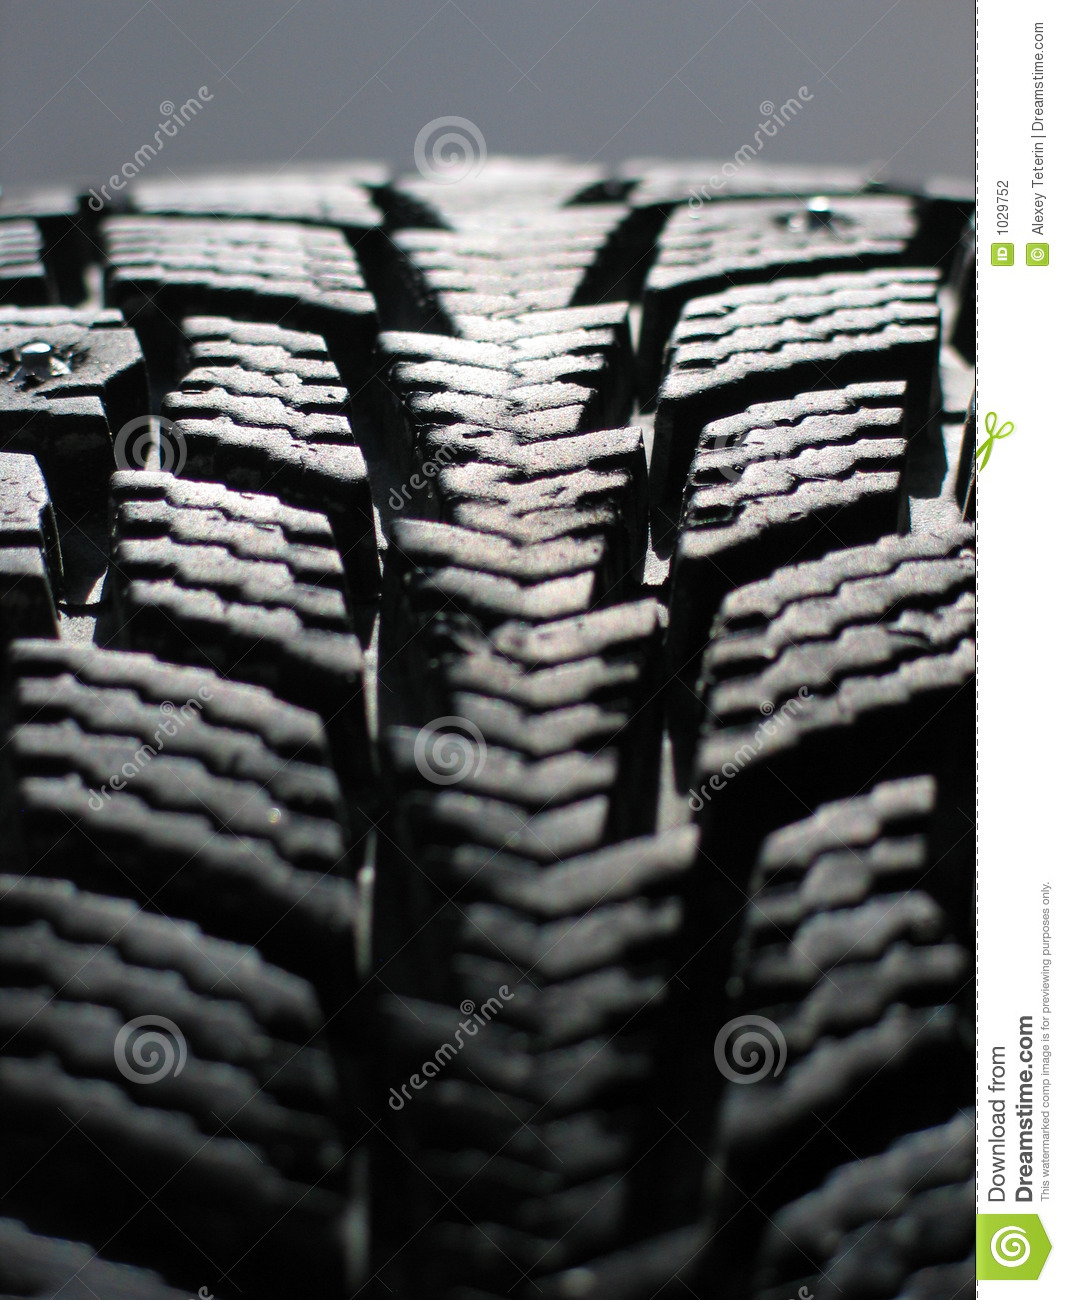 Snow tyre stock photo. Image of black, pattern, wheel - 1029752